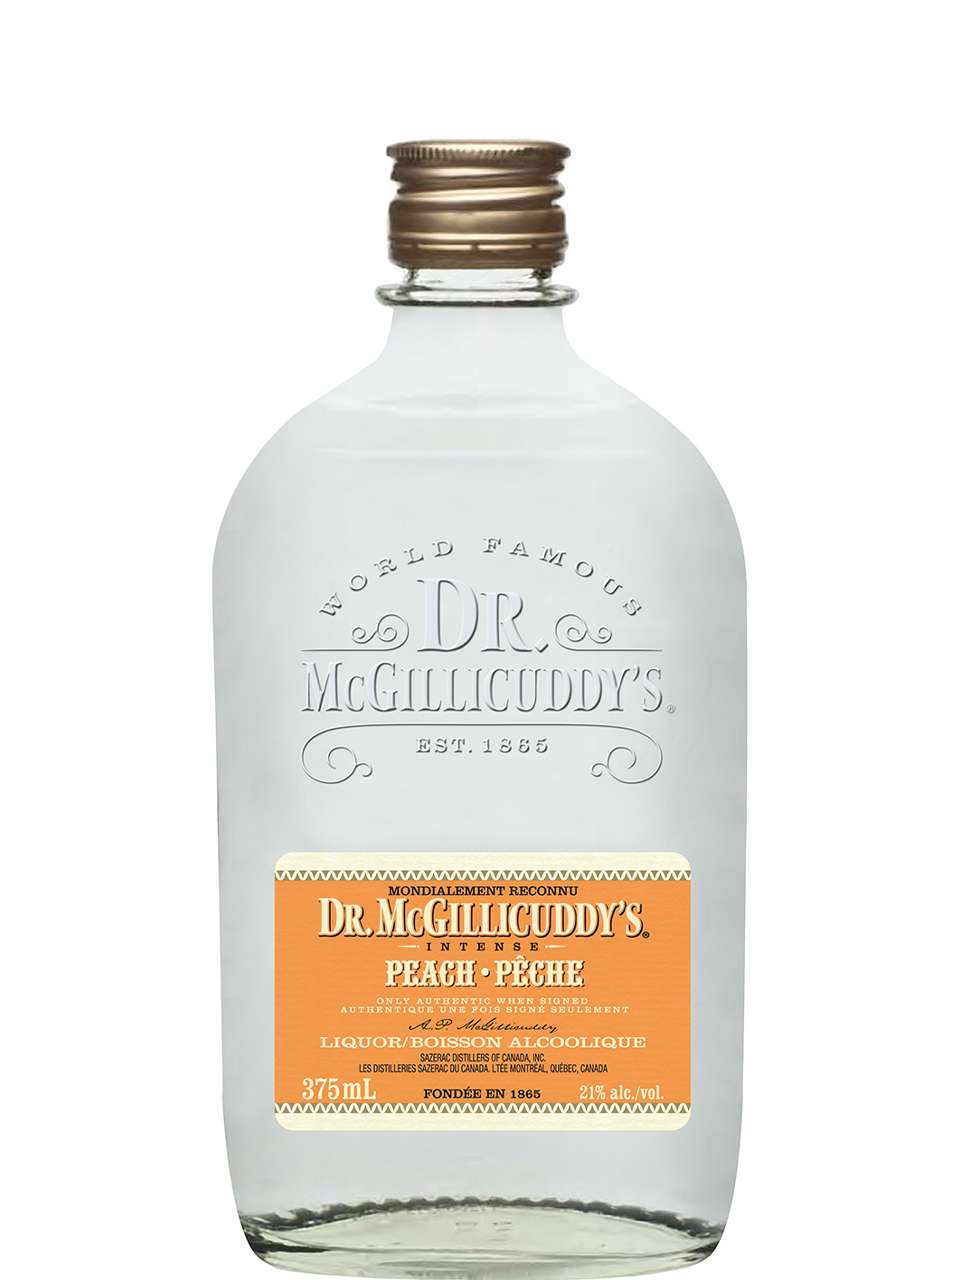 Dr.McGillicuddy's Peach